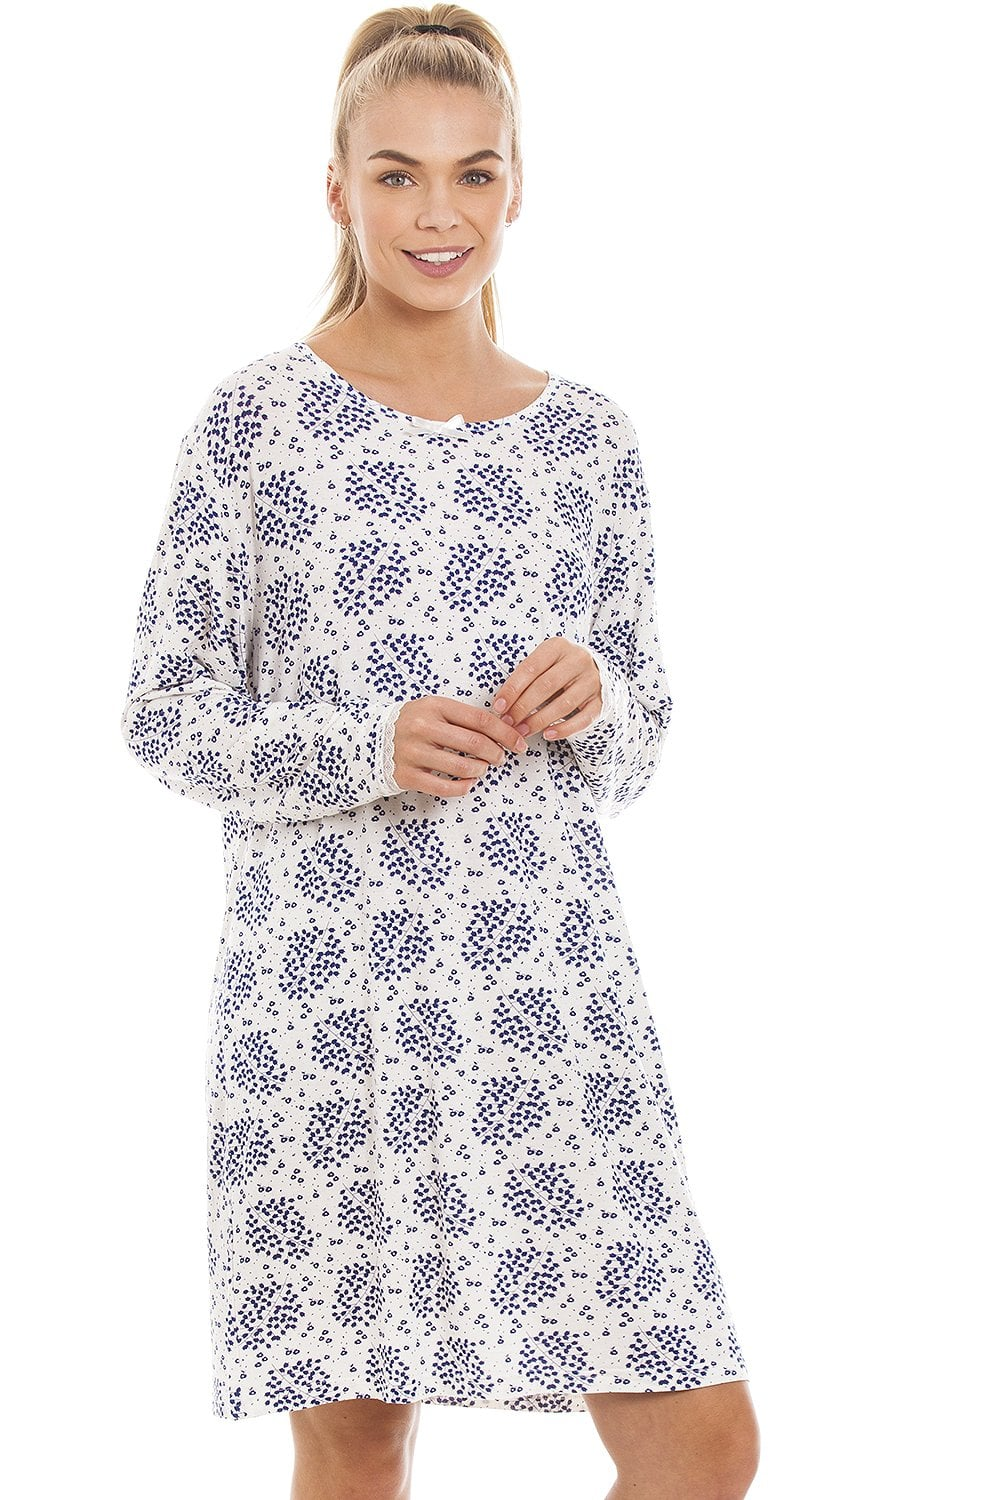 3bbd8bc43a1b Camille Womens White Floral And Leaf Print Lightweight Nightdress